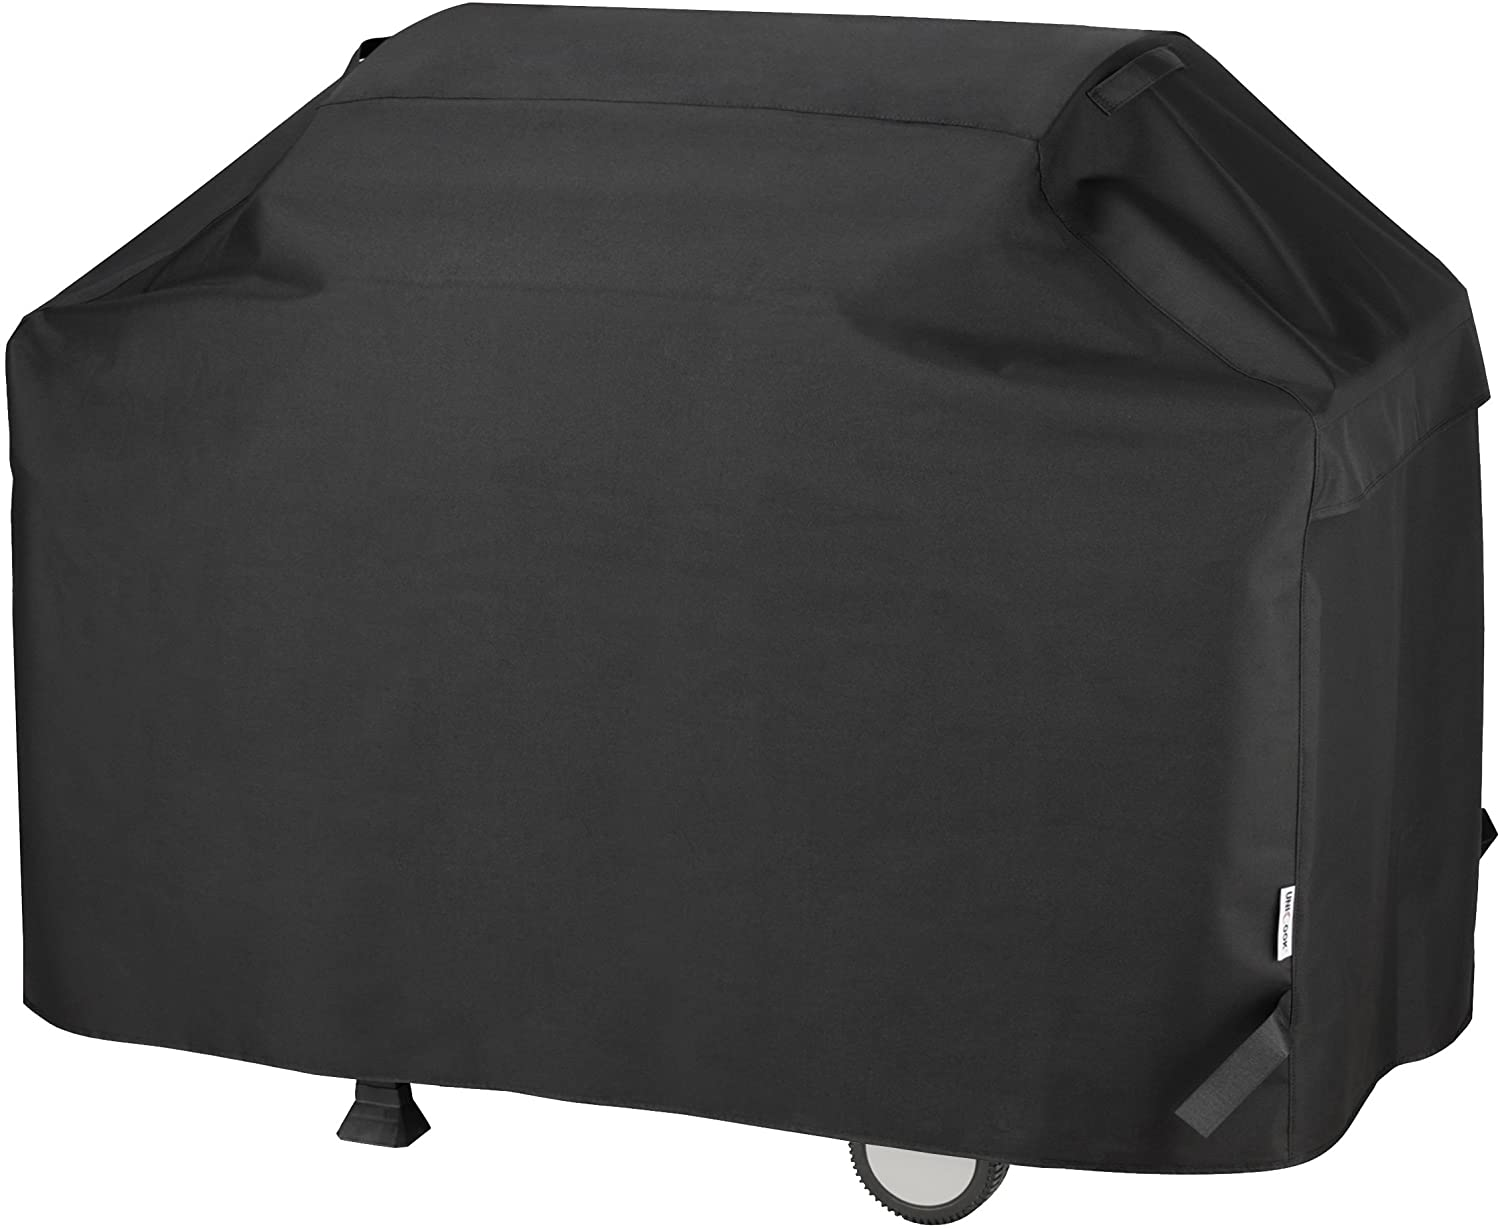 Fits Grills of Weber Char-Broil Nexgrill Brinkmann and More 75-inch XX-Large BBQ Cover UNICOOK Heavy Duty Waterproof Barbecue Gas Grill Cover Special Fade and UV Resistant Durable and Convenient